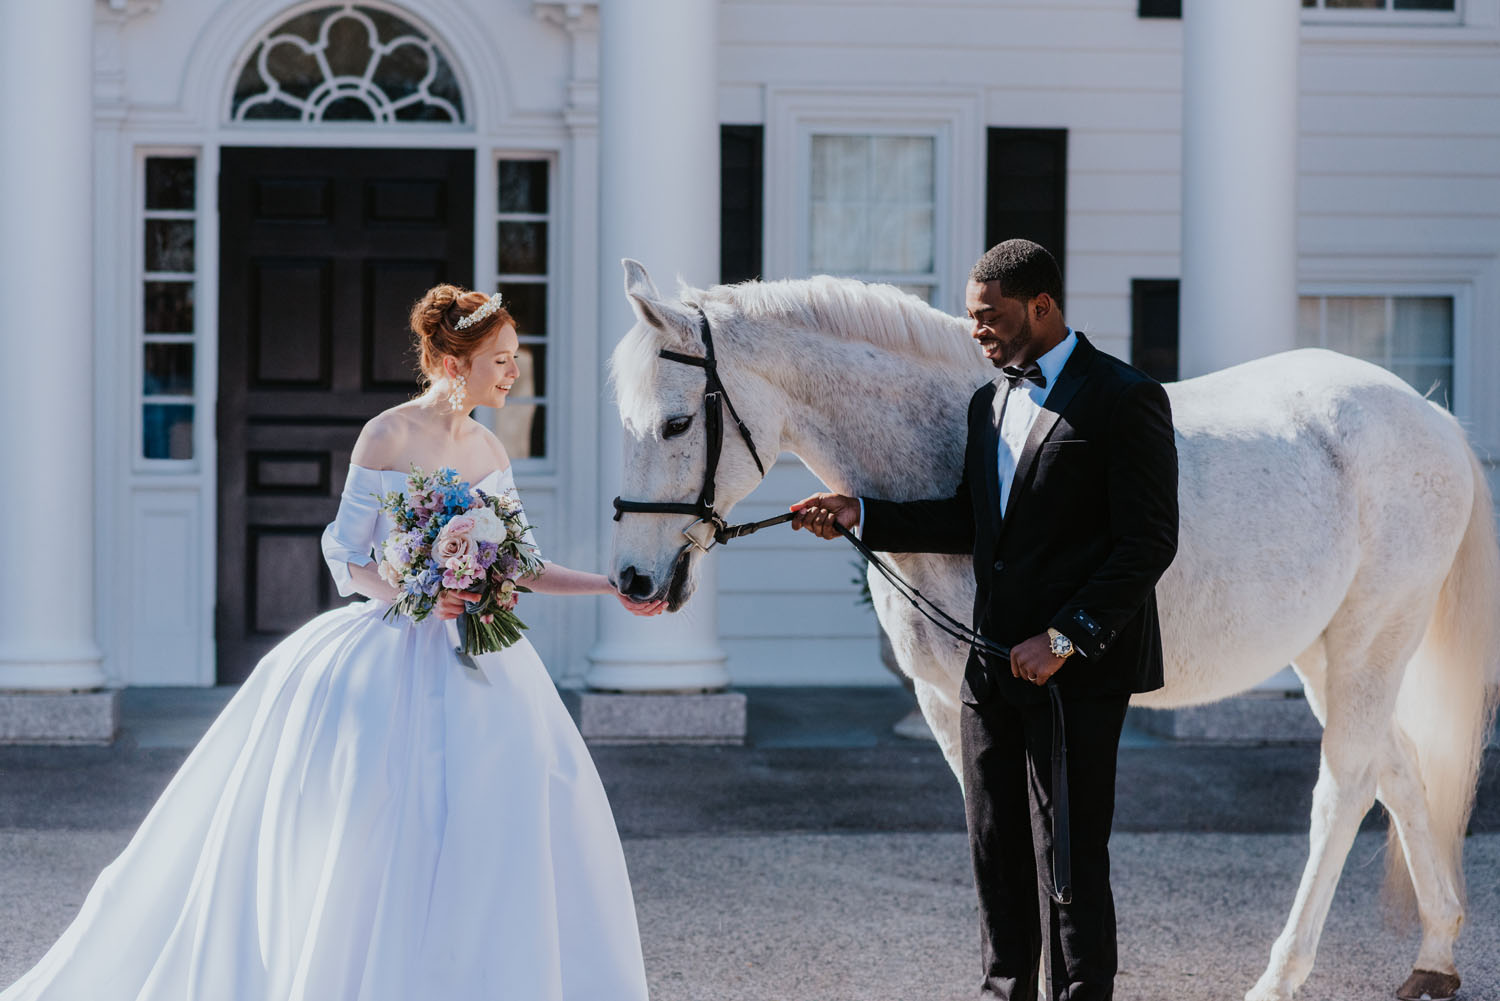 Bridgerton wedding inspiration